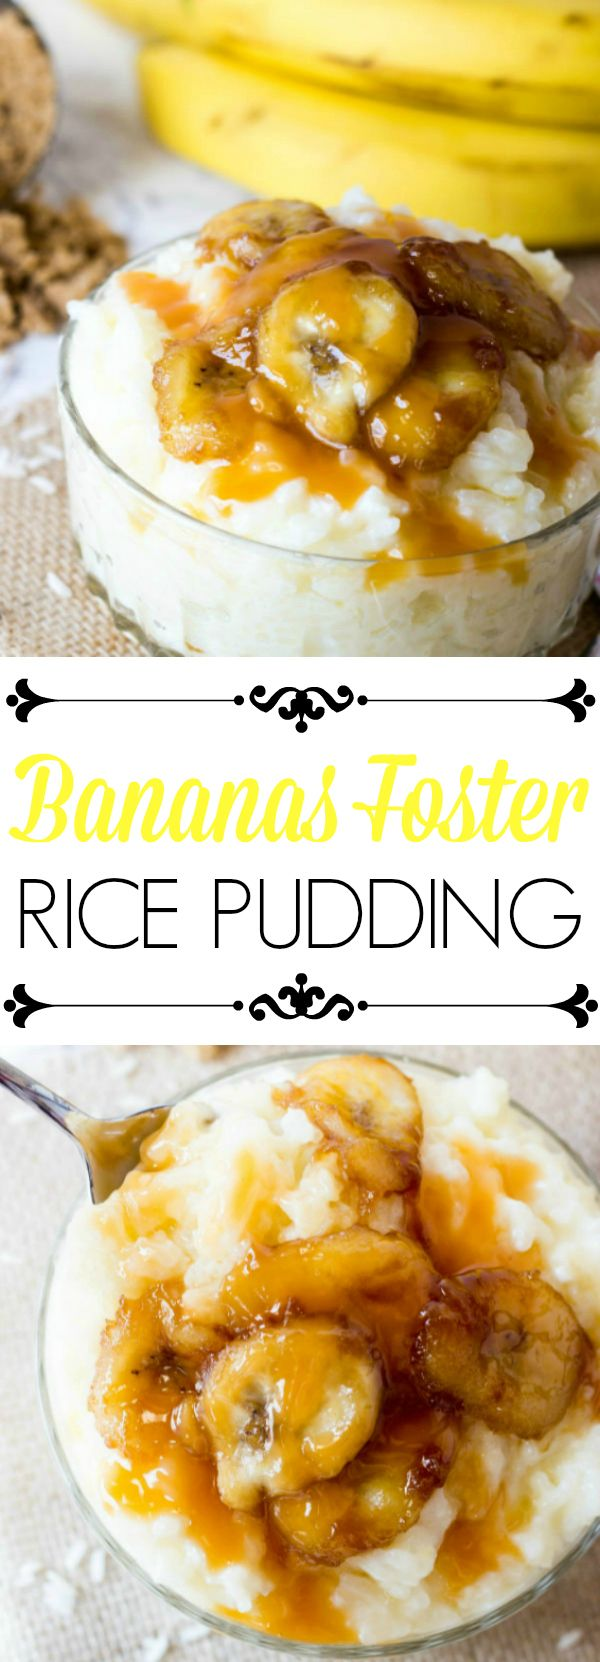 Want a quick and easy dessert option? This Bananas Foster Rice Pudding is done in less than 30 minutes and a great back-to-school treat! #Back2SchoolSuccess #ad @successrice